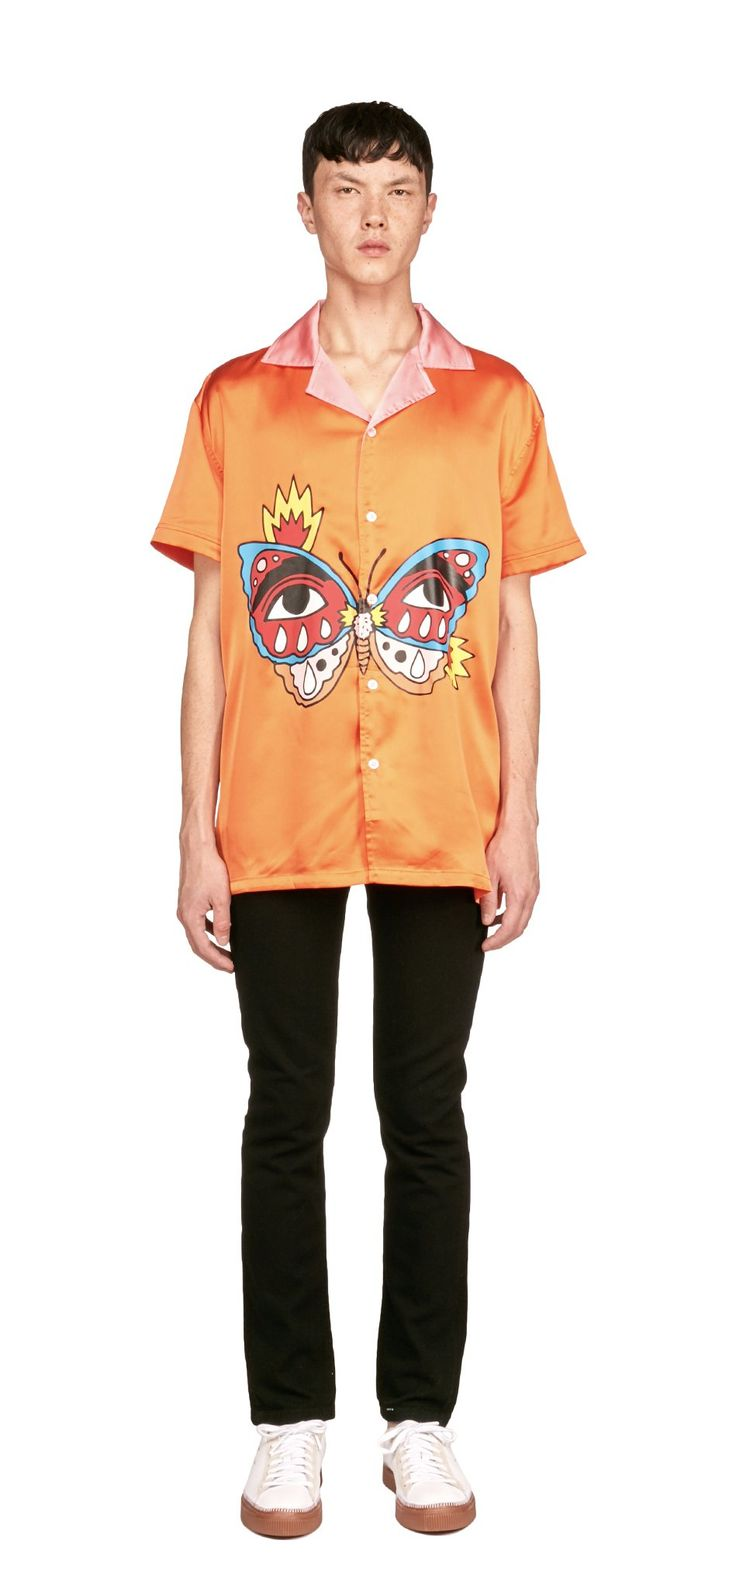 Ricardo Cavolo X Atelier New Regime Flaming Monarch Shirt / This soft-touch lightweight satin shirt features the Flaming Monarch artwork printed on the front, representing the last stage of a butterfly's evolution, symbolizing grace, growth and soul. #ricardocavolo